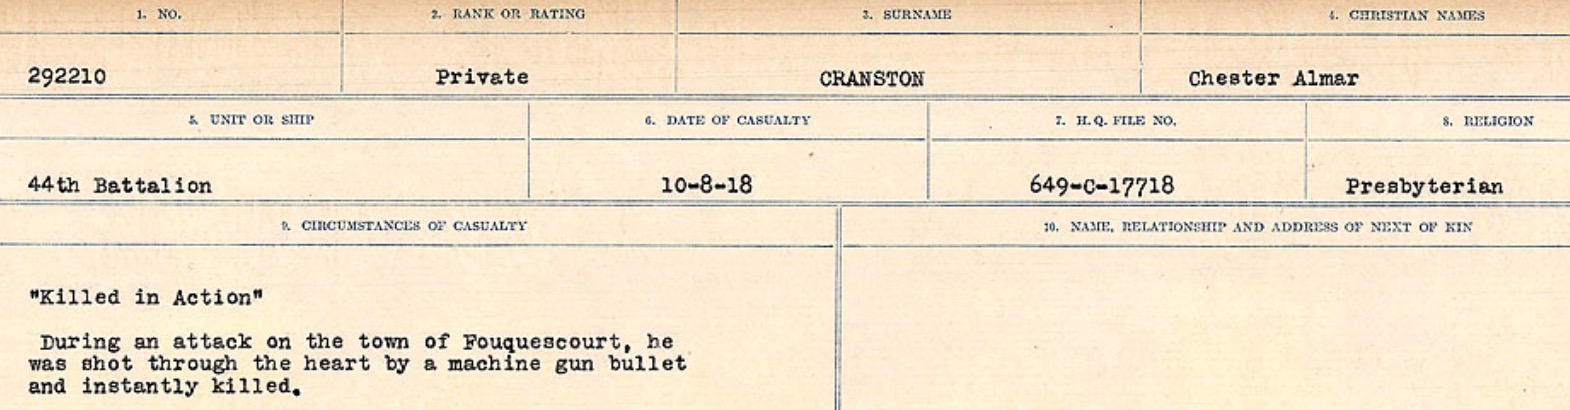 Circumstances of death registers– Source: Library and Archives Canada. CIRCUMSTANCES OF DEATH REGISTERS, FIRST WORLD WAR Surnames: CRABB TO CROSSLAND Microform Sequence 24; Volume Number 31829_B016733. Reference RG150, 1992-93/314, 168. Page 263 of 788.